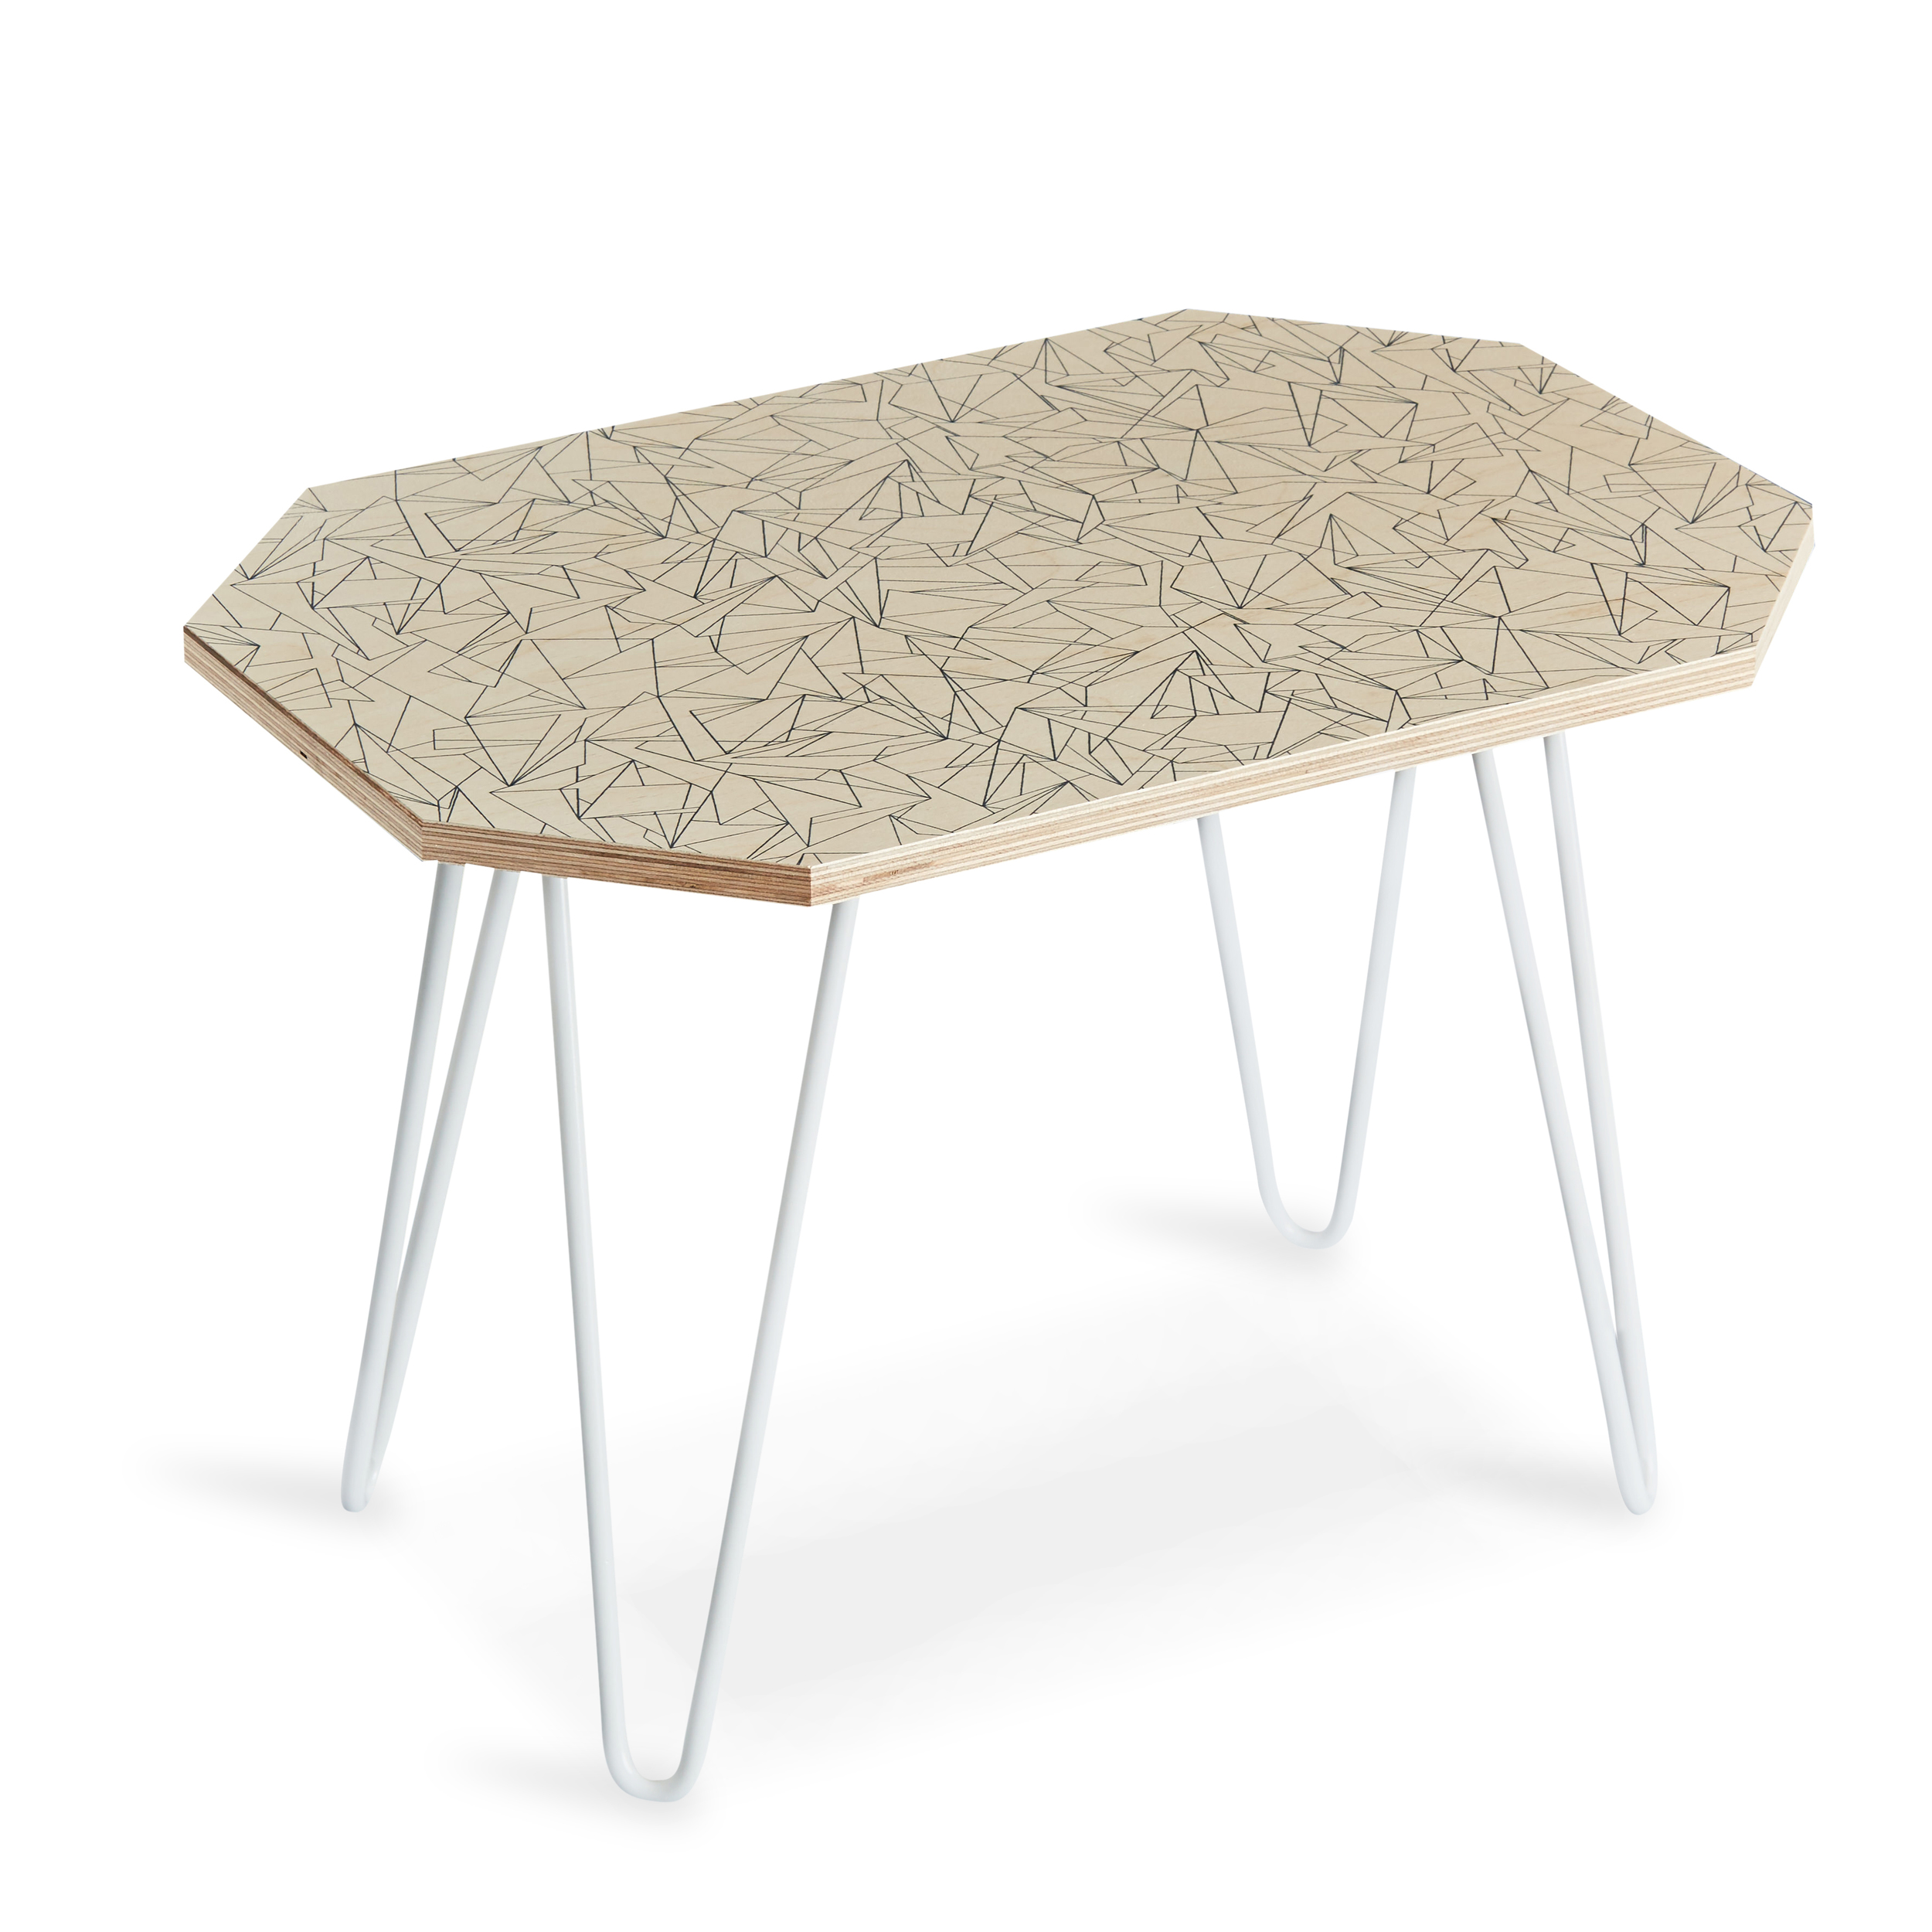 Cracked Ice Side table